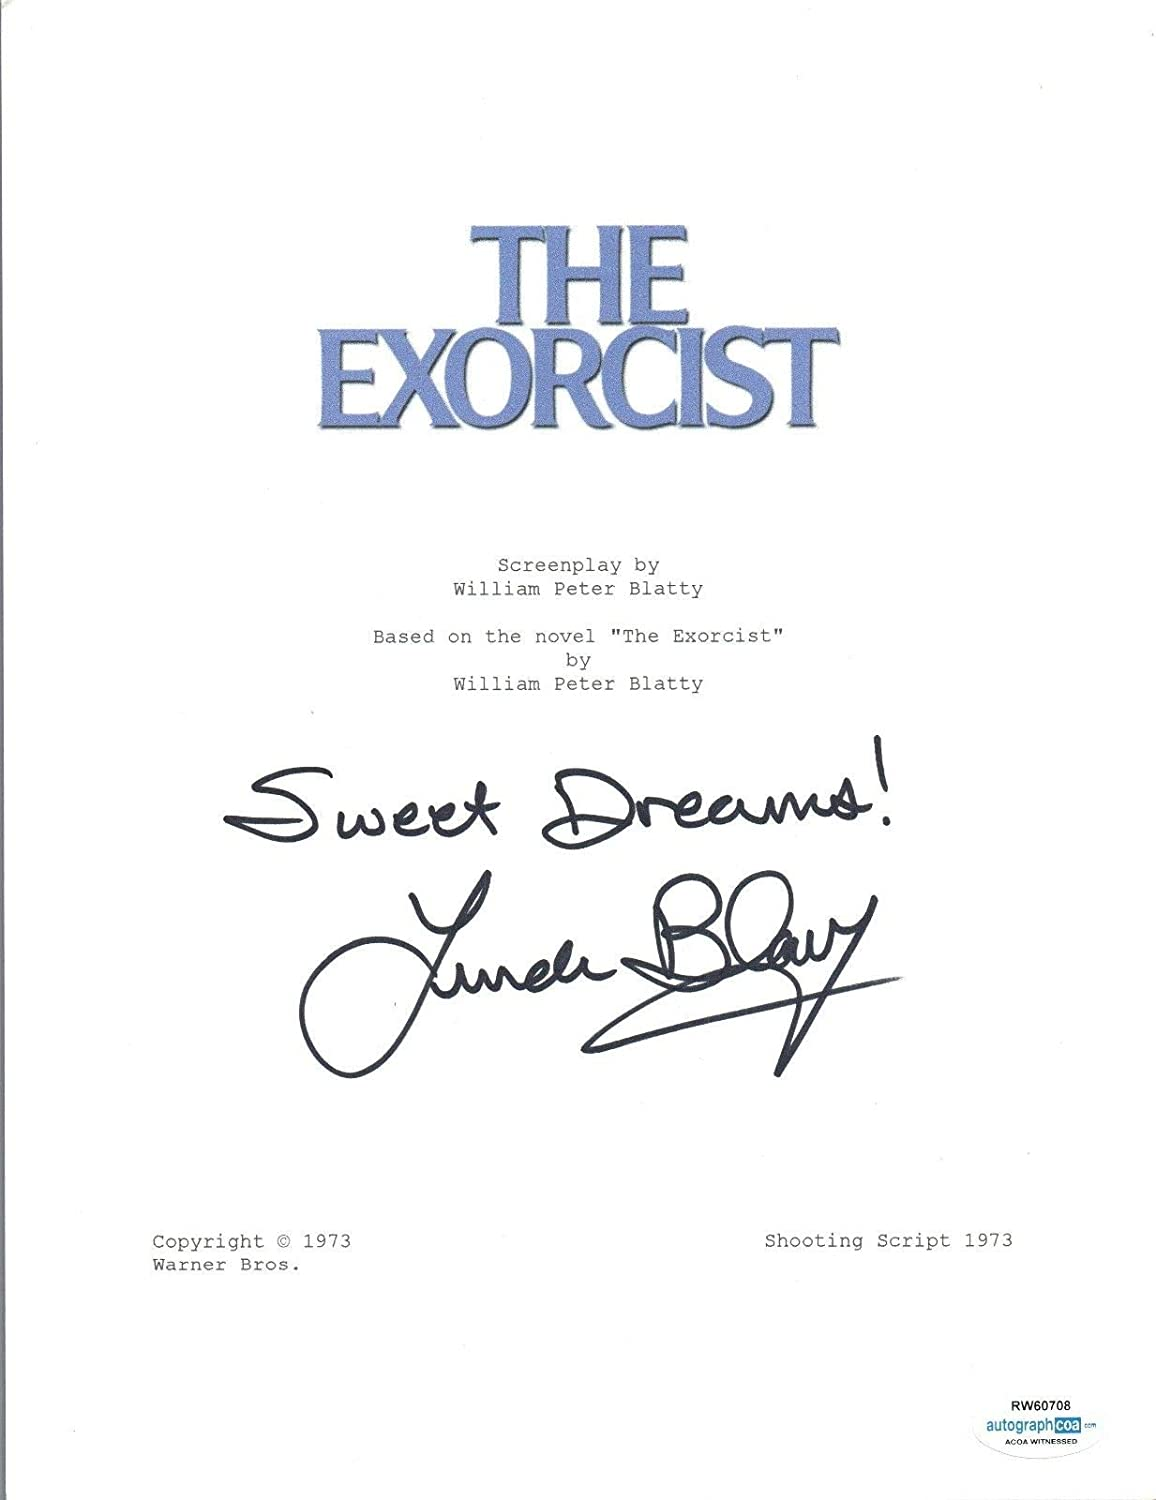 Linda Blair Signed Autograph THE EXORCIST Full Movie Script ACOA Witnessed Proof Unbranded